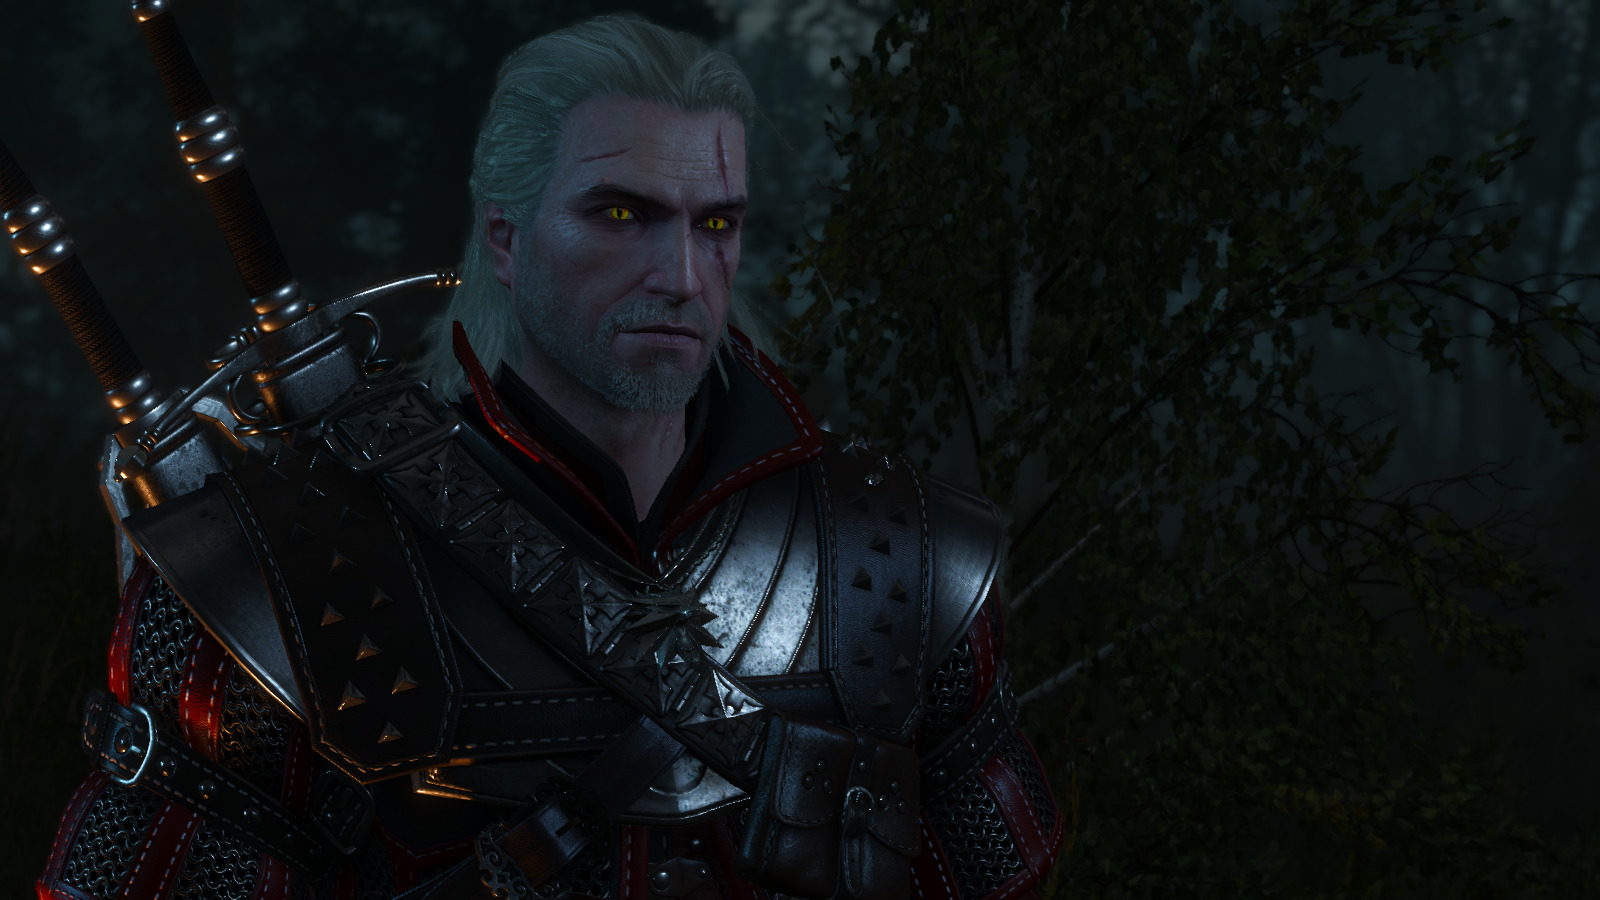 witcher3_2018-06-14_21-52-43-93.jpg - Witcher 3: Wild Hunt, the